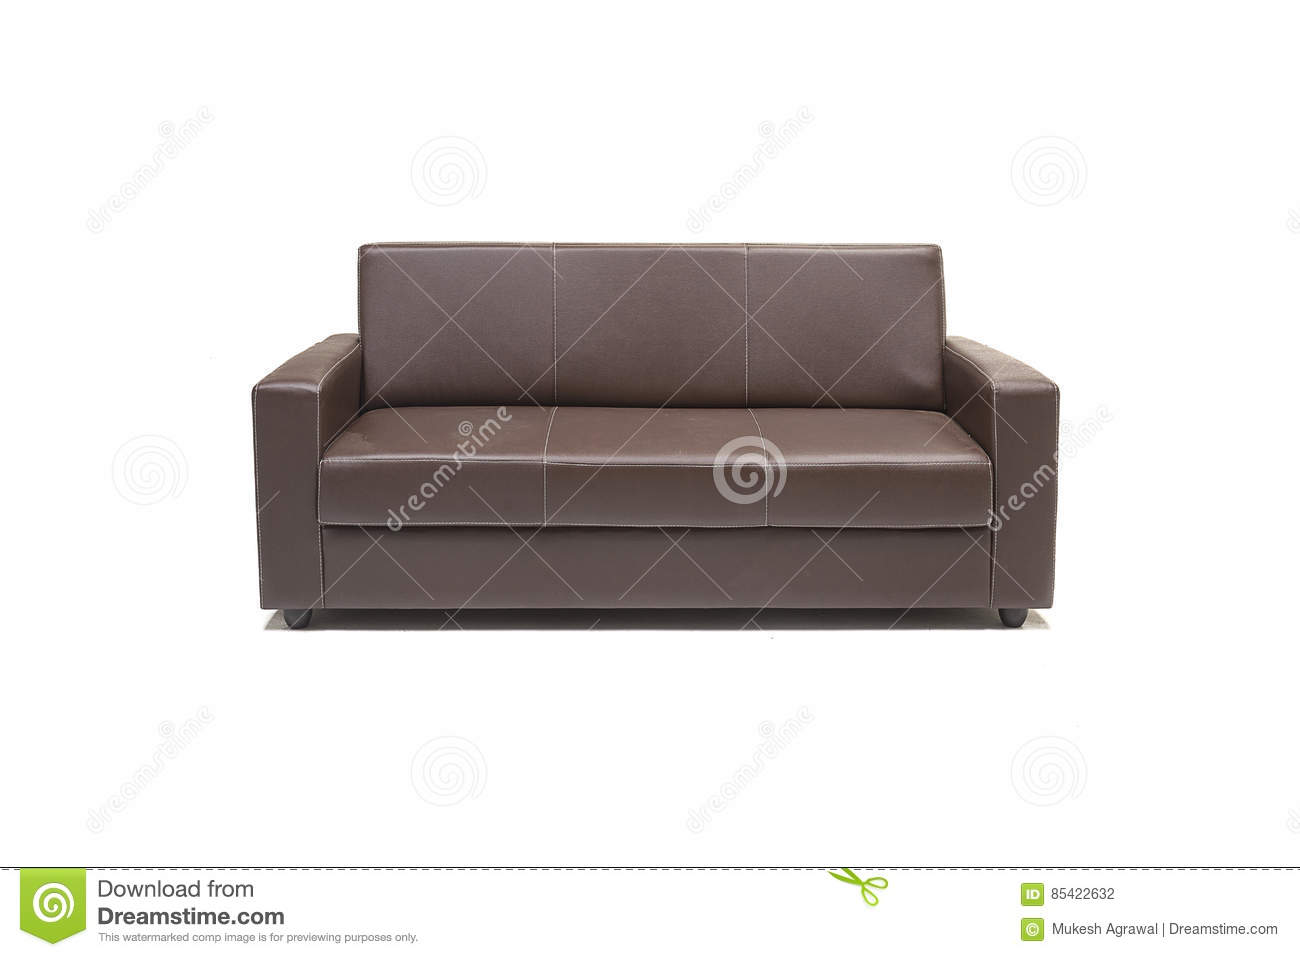 beige colour sofa set american furniture warehouse sectional sofas beautiful leather color on a white royalty free